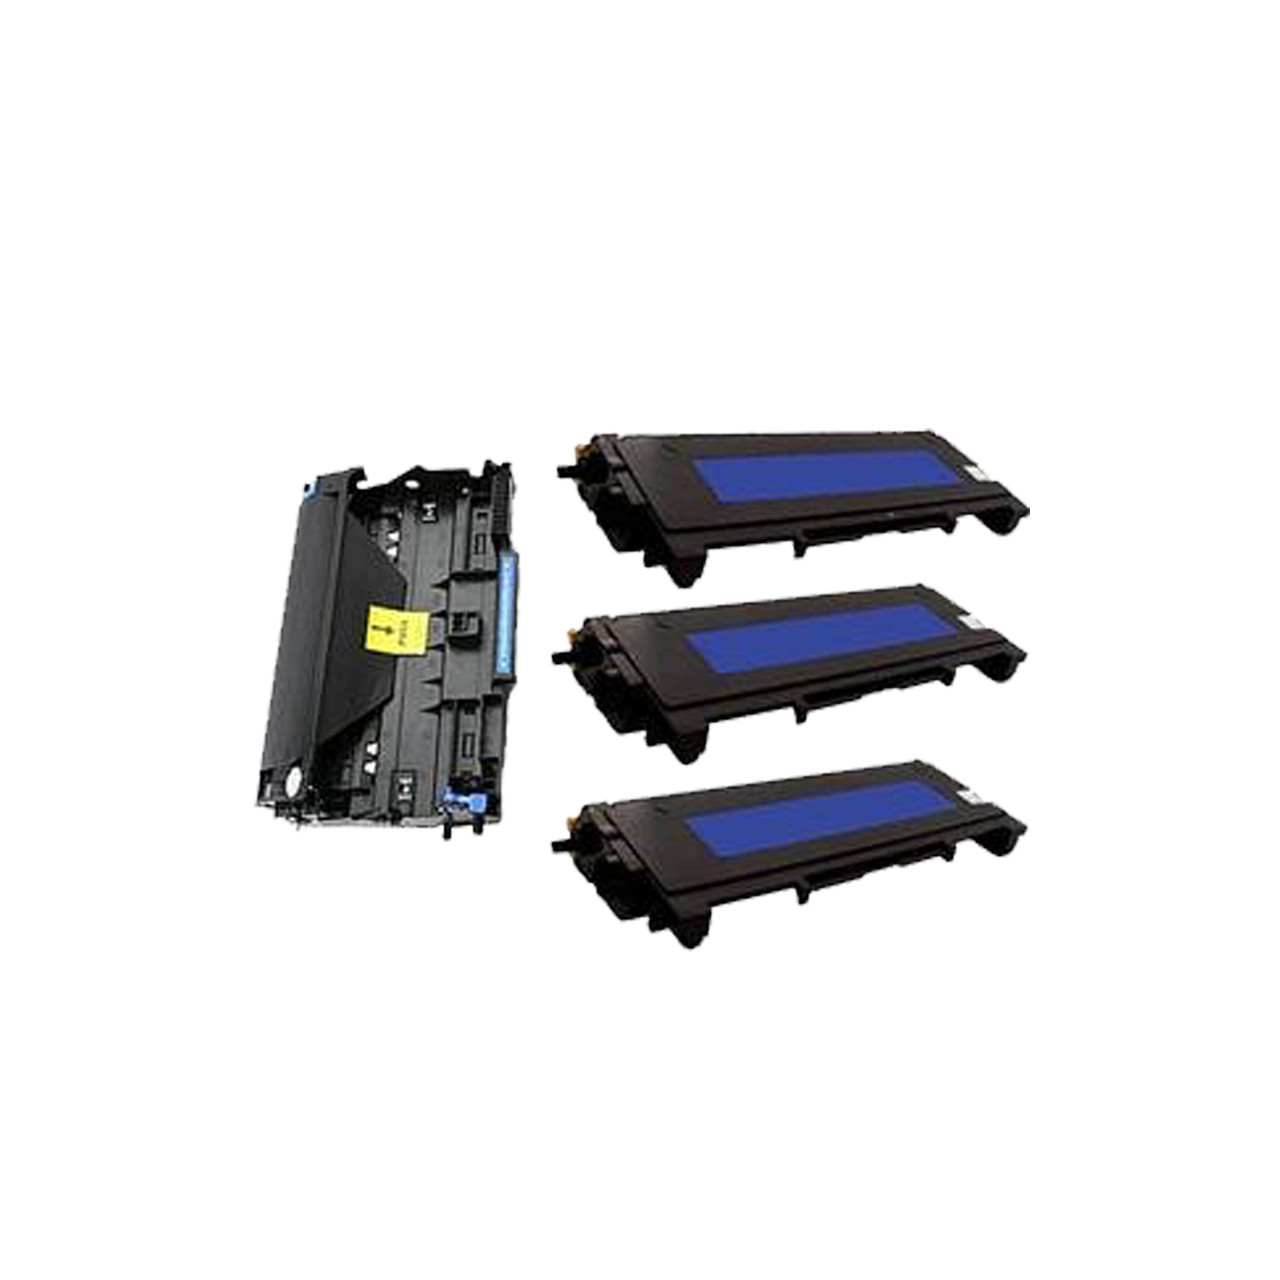 2 TN360 Toner Cartridge+DR360 Drum For Brother HL-2140 2170W MFC-7340 MFC-7840W